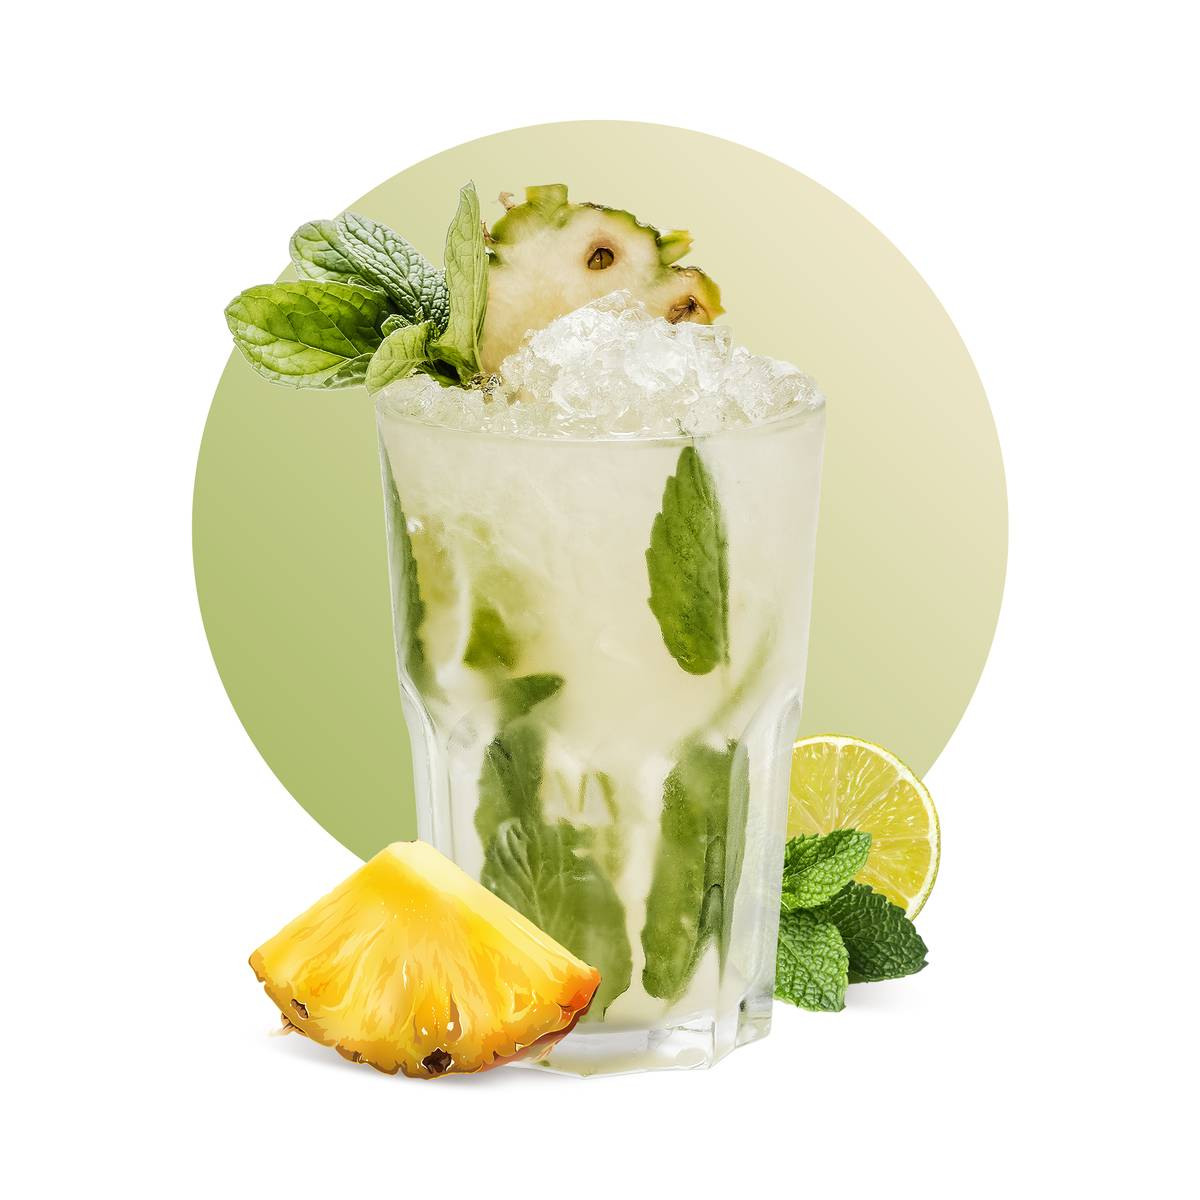 Pineapple Mojito Drink Recipe